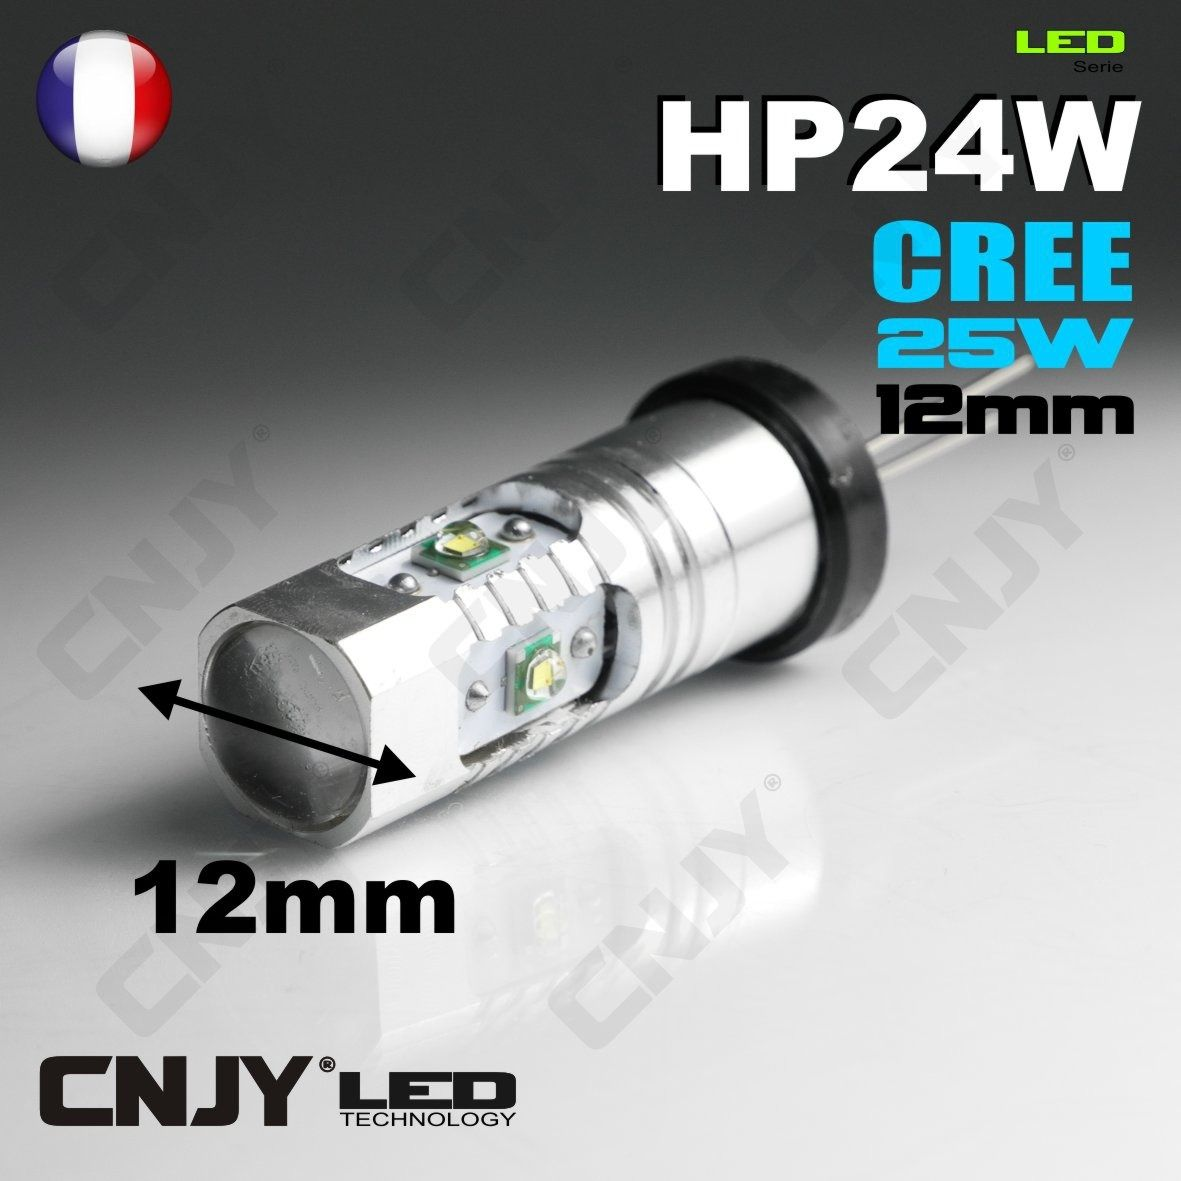 1 ampoule led cnjy hp24 cree 25w feux de jour diurne blanc 6000k pour montage sur citroen c5 c4. Black Bedroom Furniture Sets. Home Design Ideas